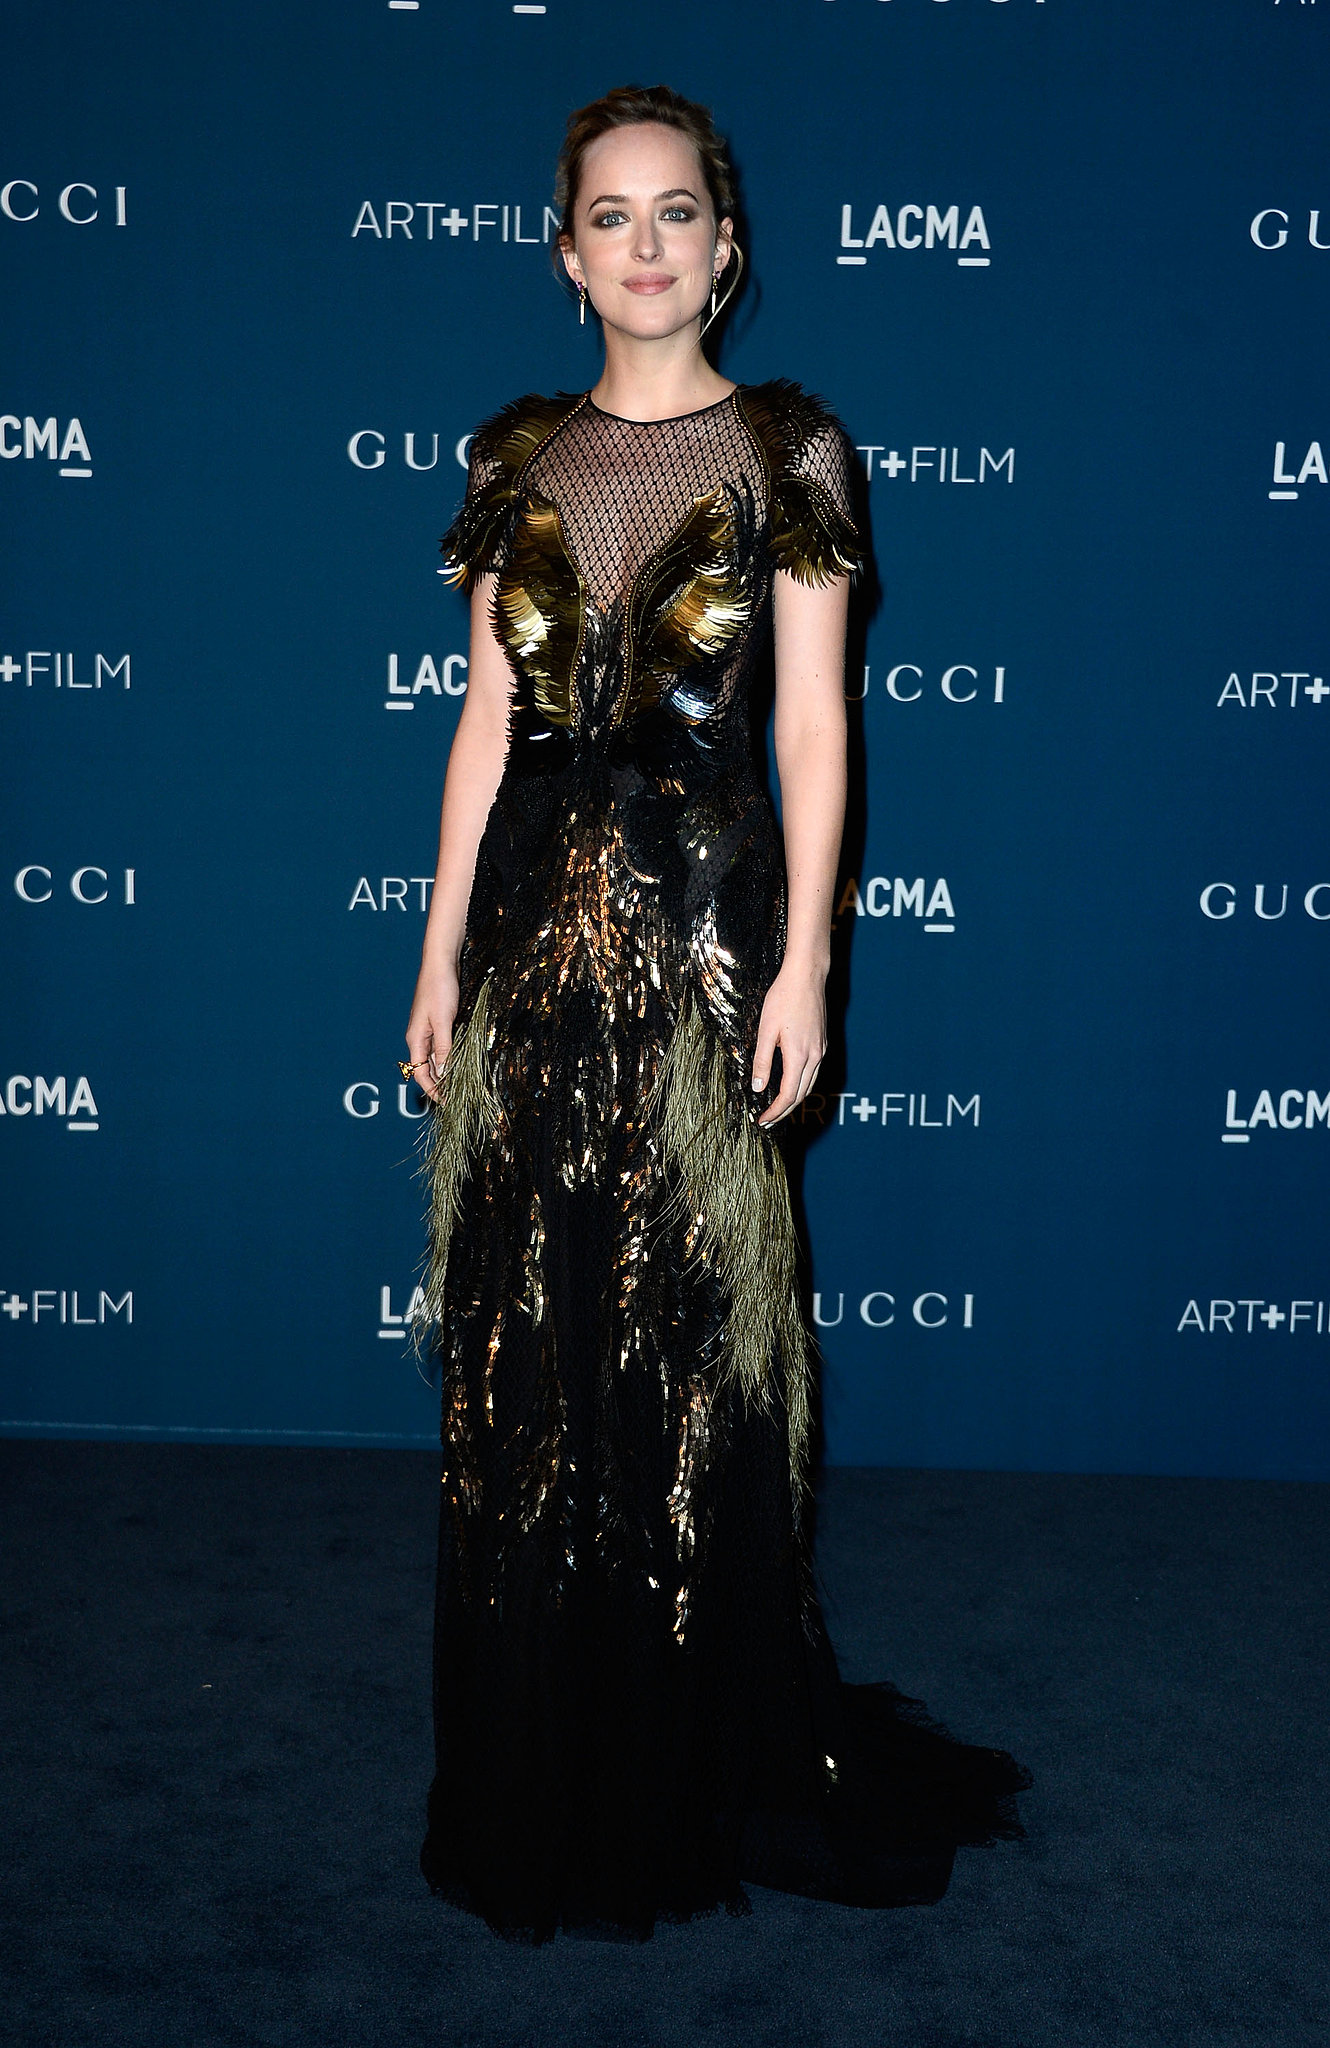 Dakota Johnson wowed in her rich green gown while walking the carpet with Gucci at LACMA.